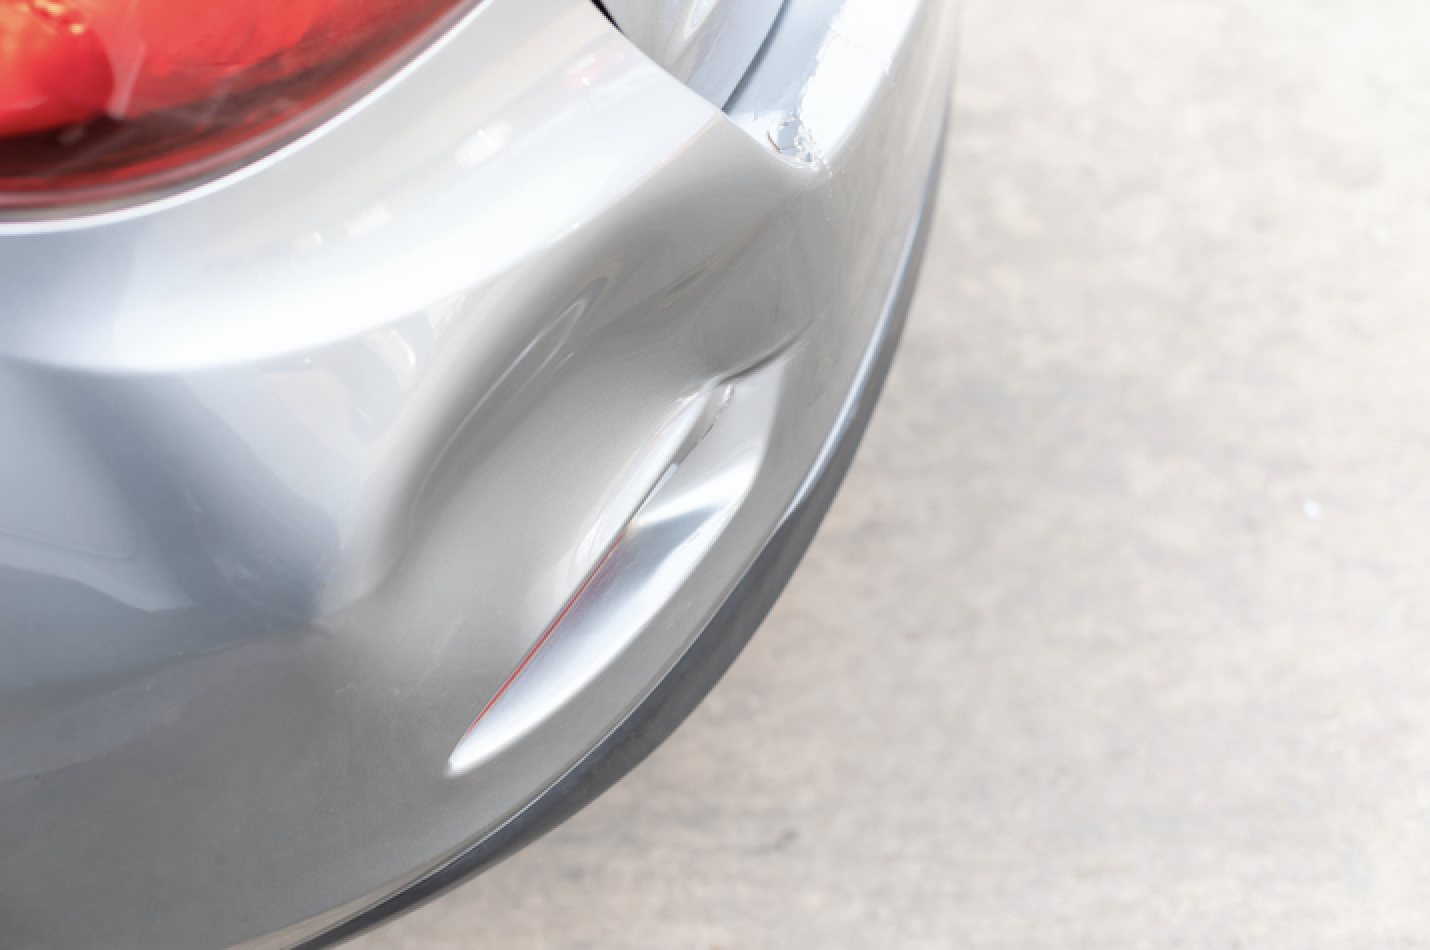 Dented Car Bumper Repair At An Auto Body Shop In Oak Brook, Illinois